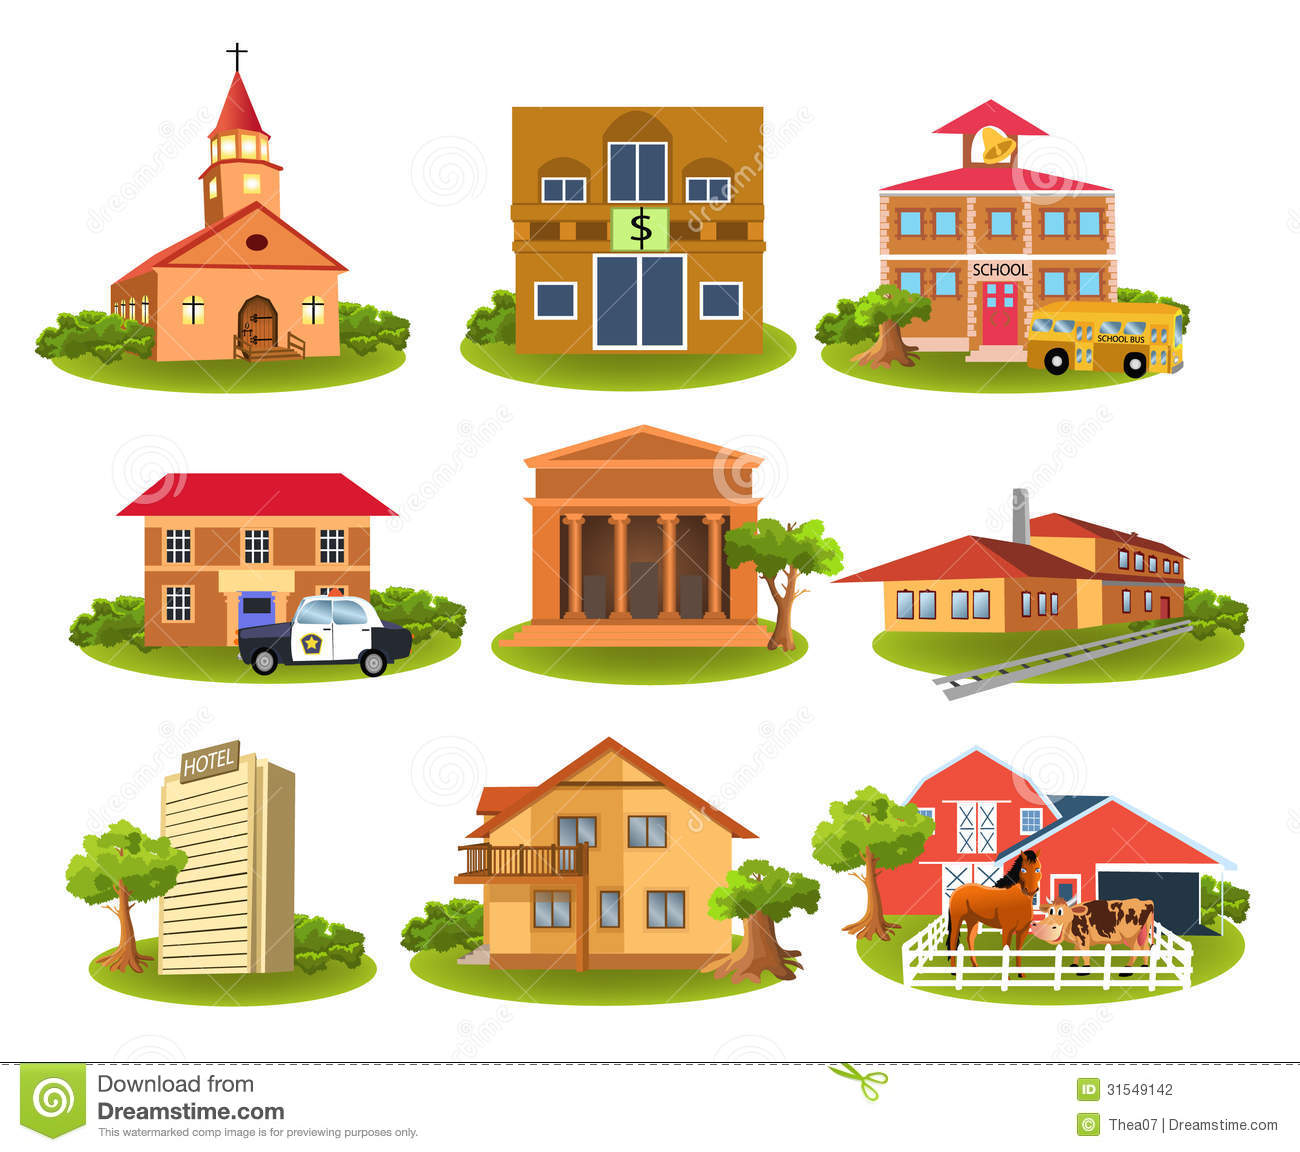 Places In The Community Clipart.